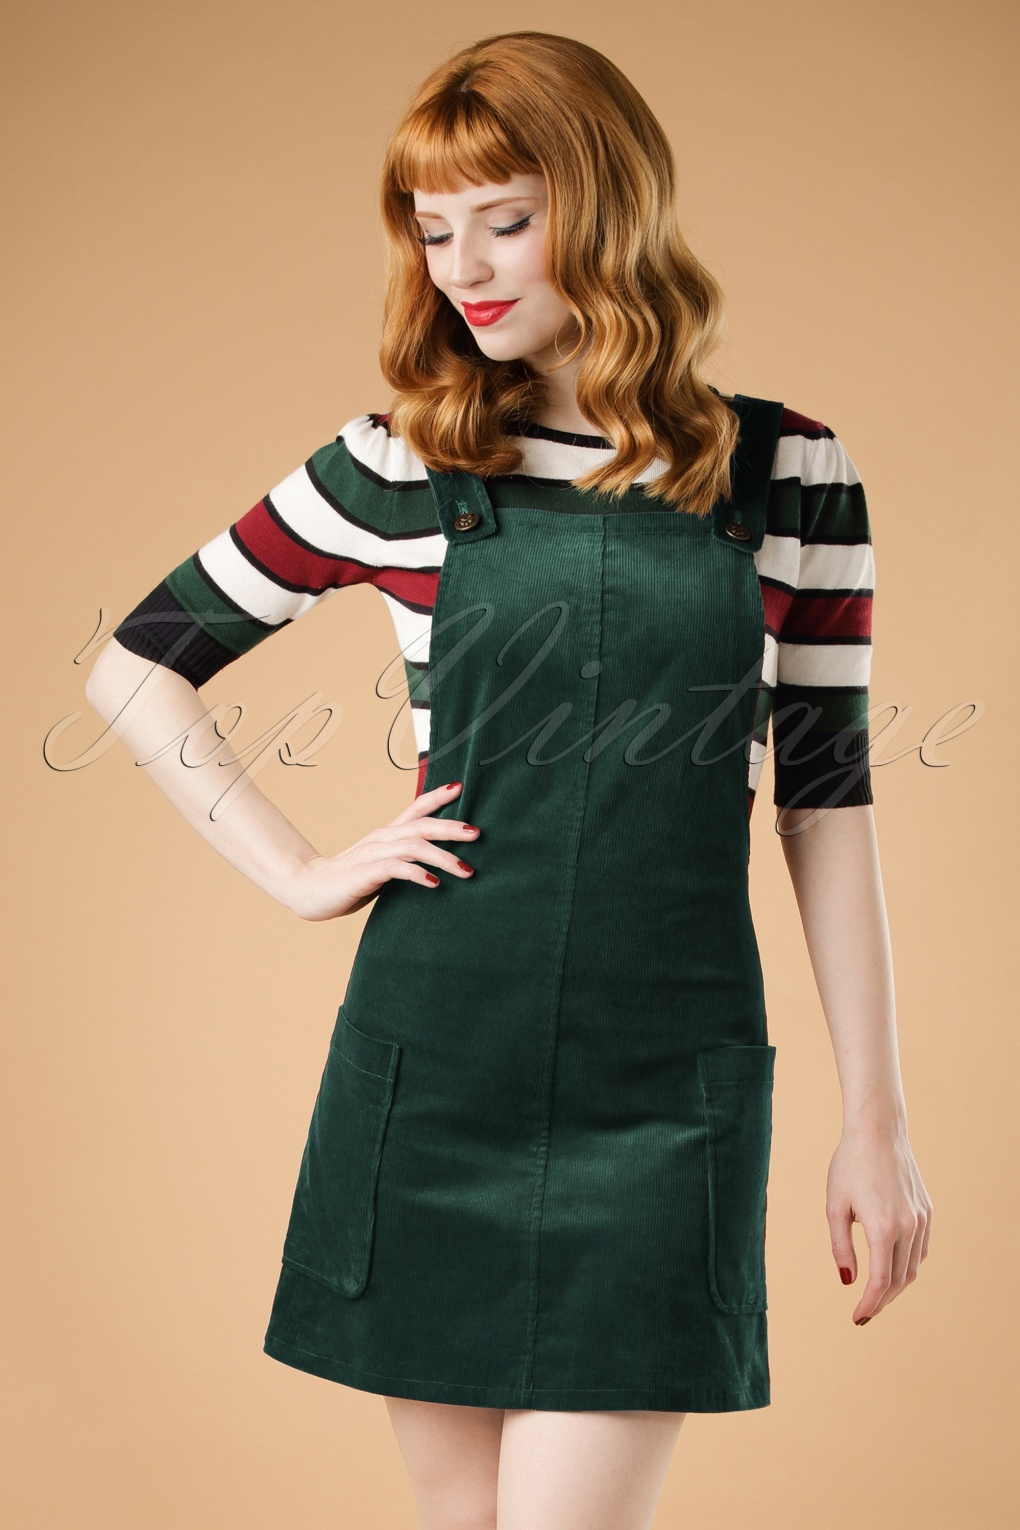 1960s Mad Men Dresses and Clothing Styles 60s Lena Pinafore Dress in Green £24.77 AT vintagedancer.com